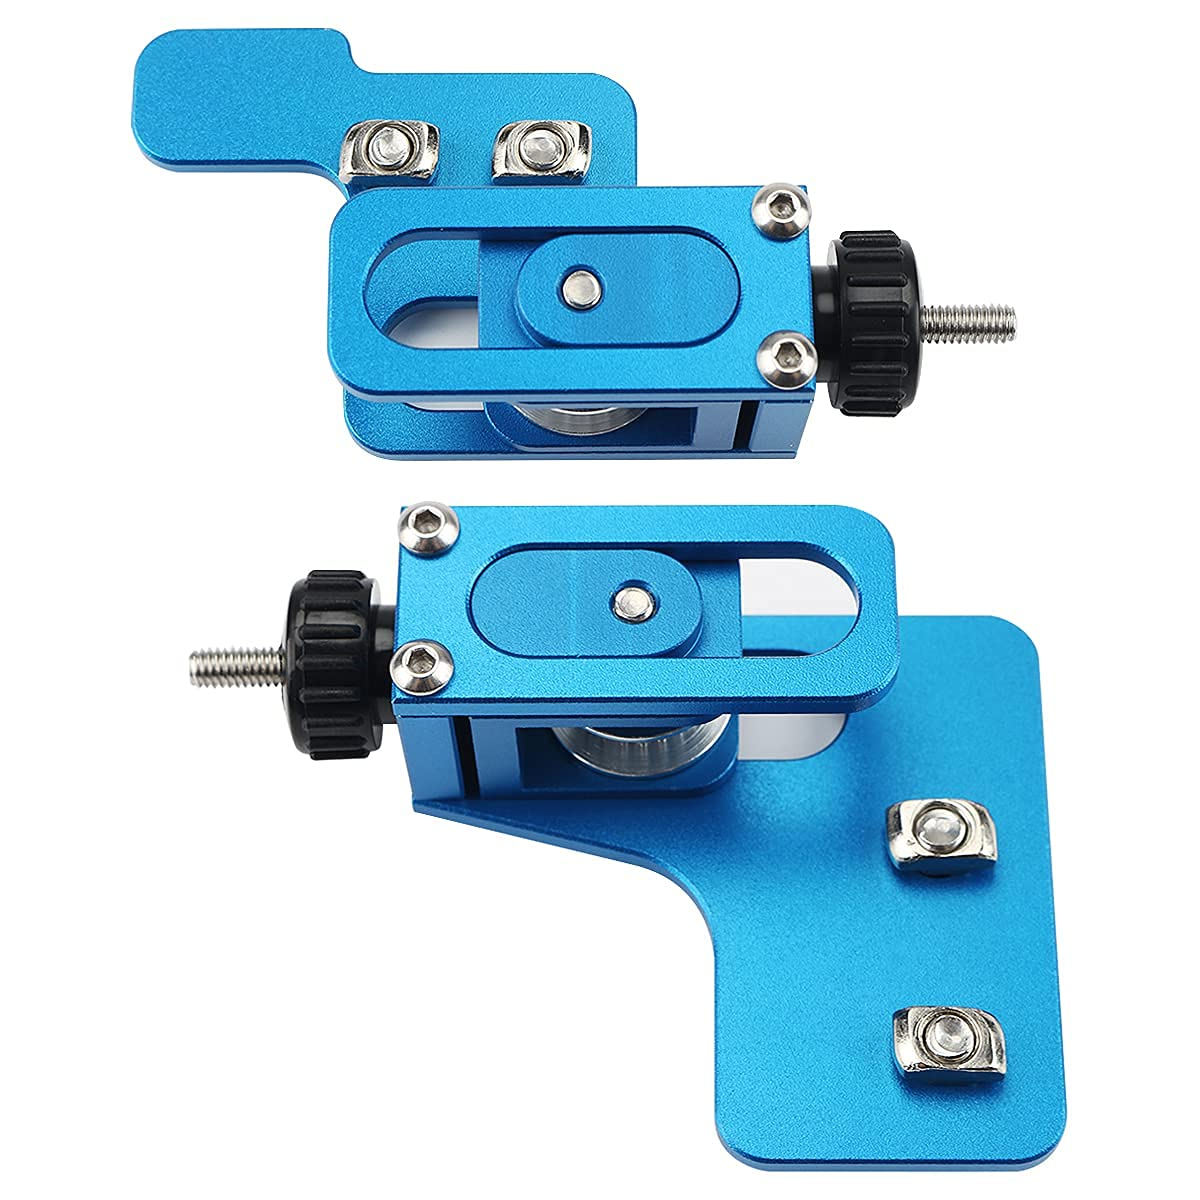 FYSETC 3D Printer Upgrade Accessories Aluminum Profile X Y Axis Synchronous Belt Stretch Straighten Tensioner Blue Compatible with Artilery Genus